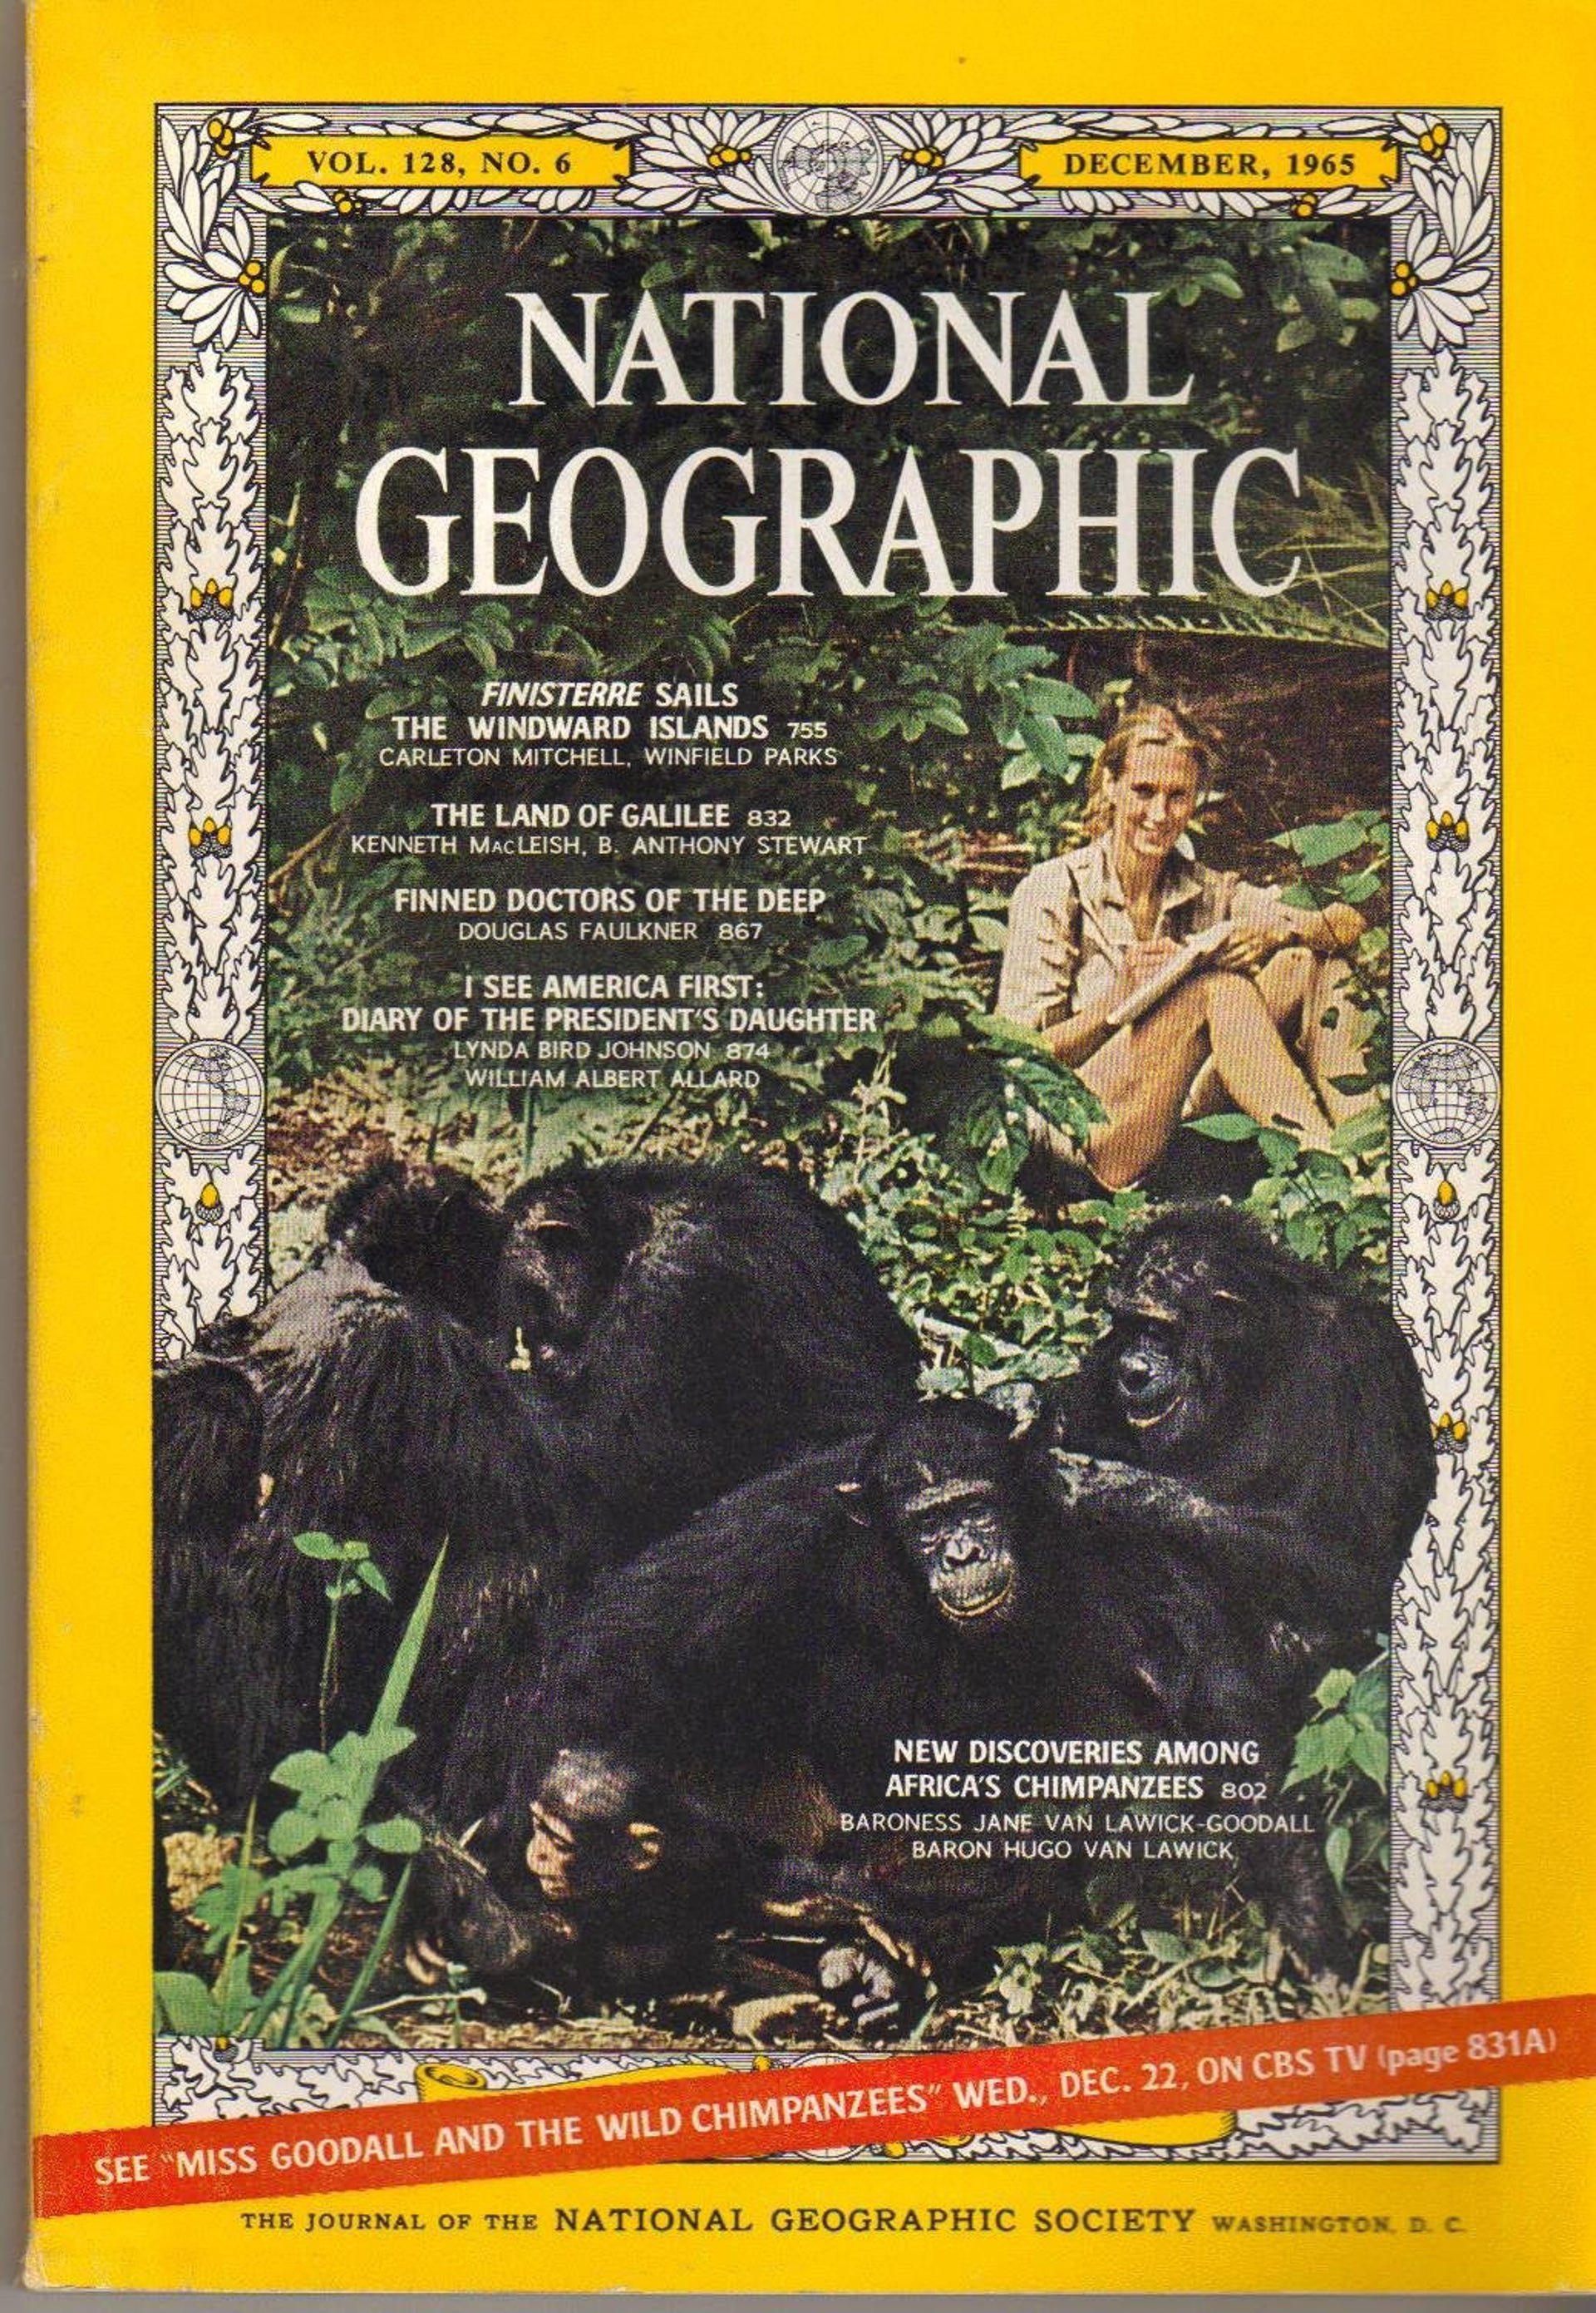 The cover of National Geographic in 1965.